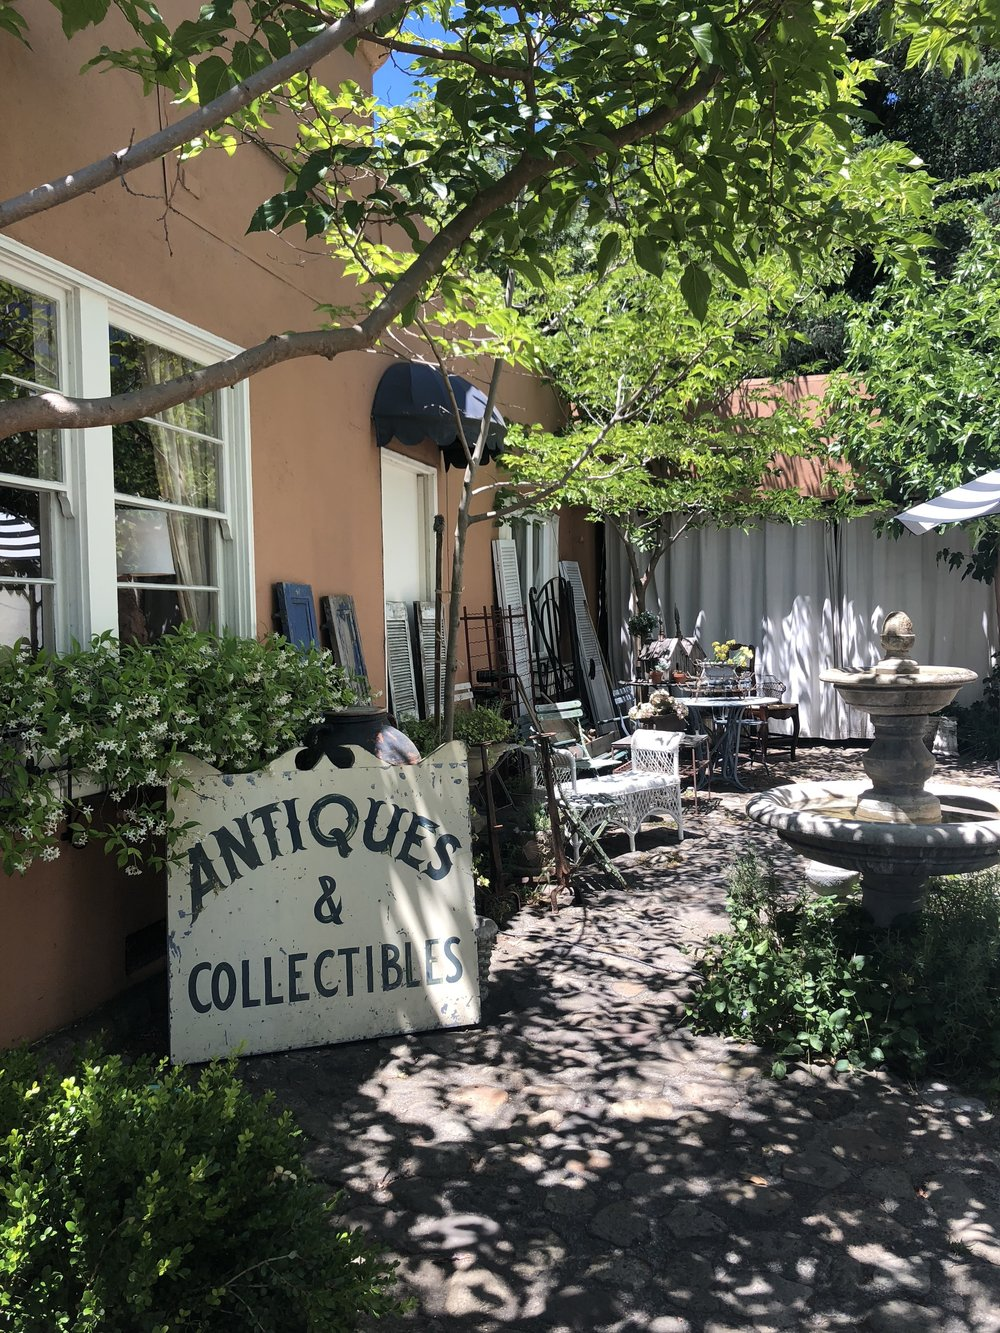 We did a little shopping before heading home. Lincoln Street, the downtown drag of Calistoga, has some great antique stores.